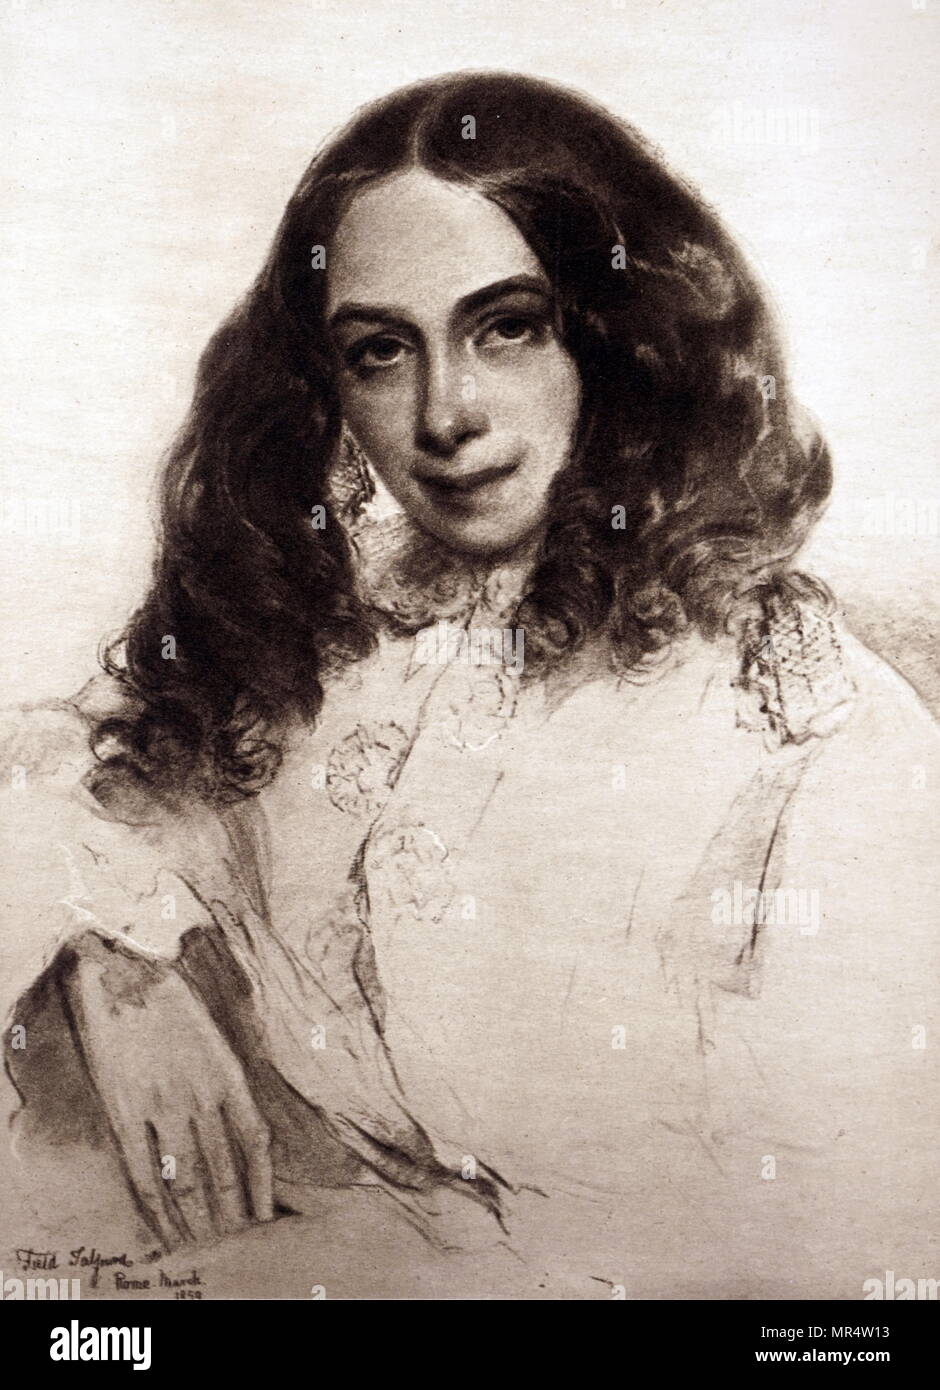 Portrait of Elizabeth Barrett Browning (1806-1861) an English poet of the Victorian era. Dated 19th century - Stock Image